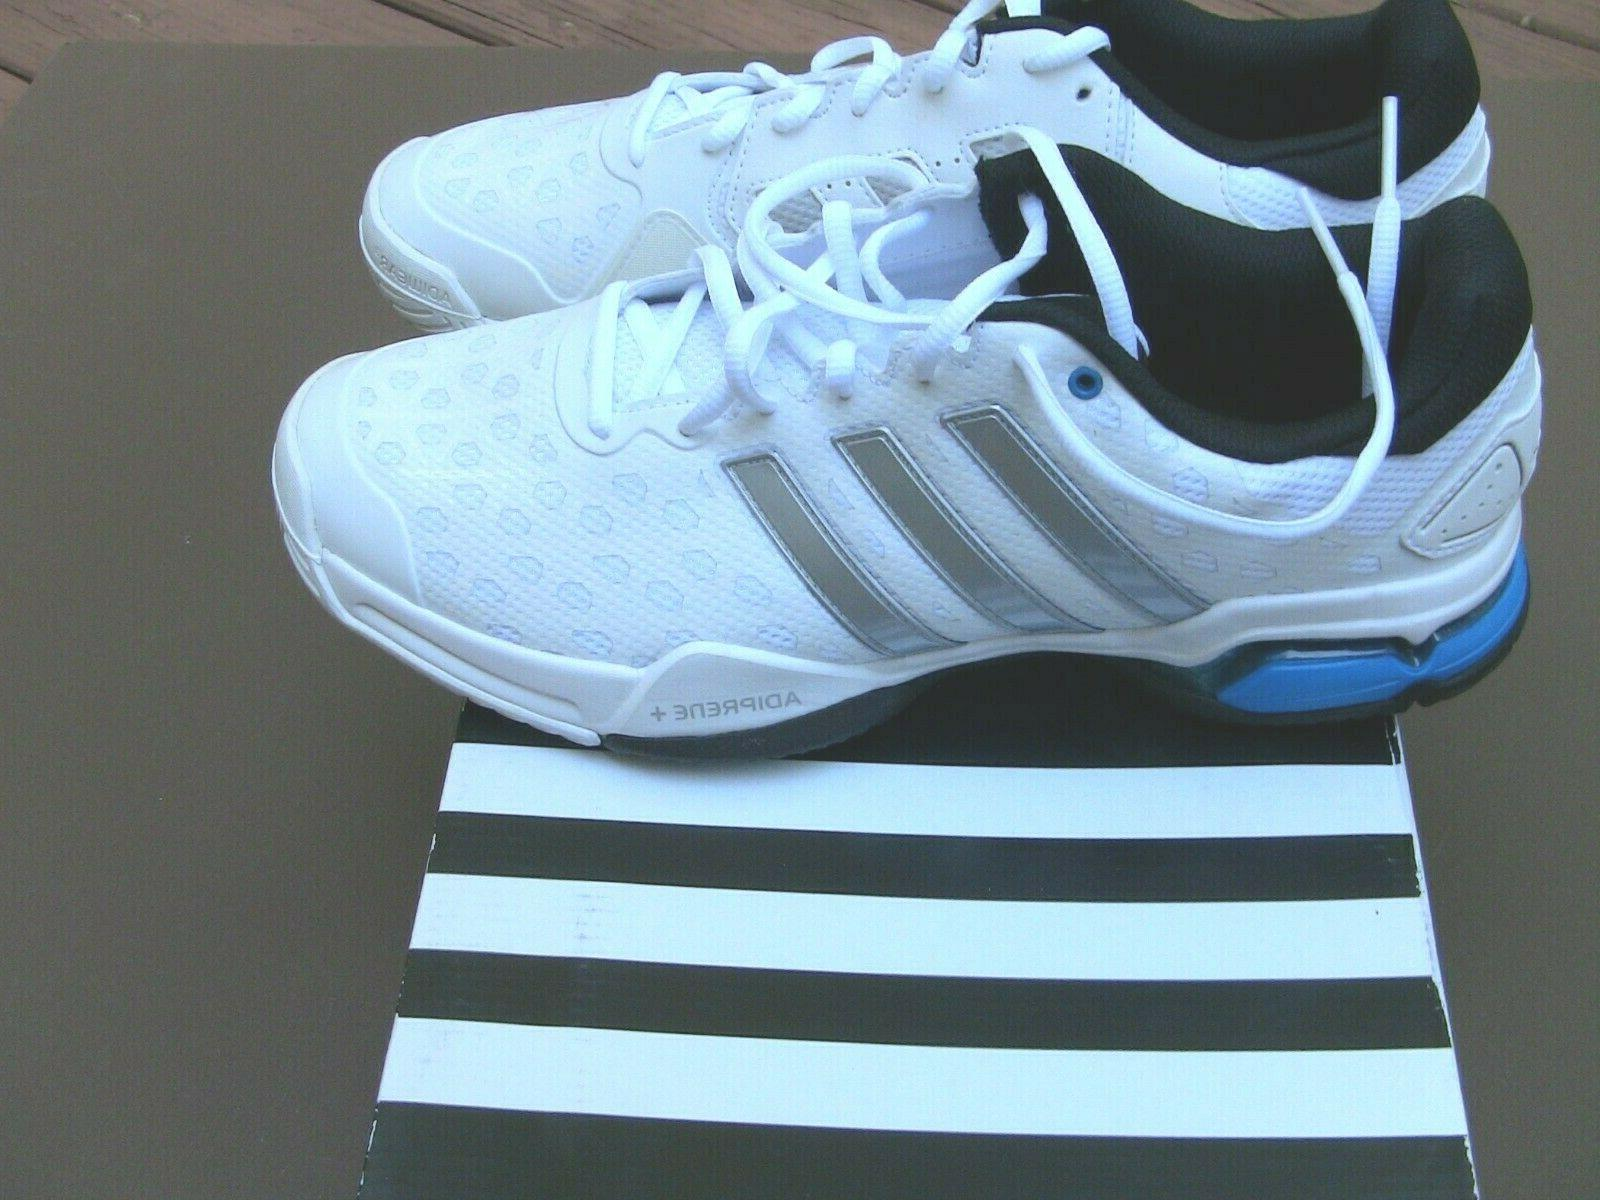 tennis shoes brand new in box barricade